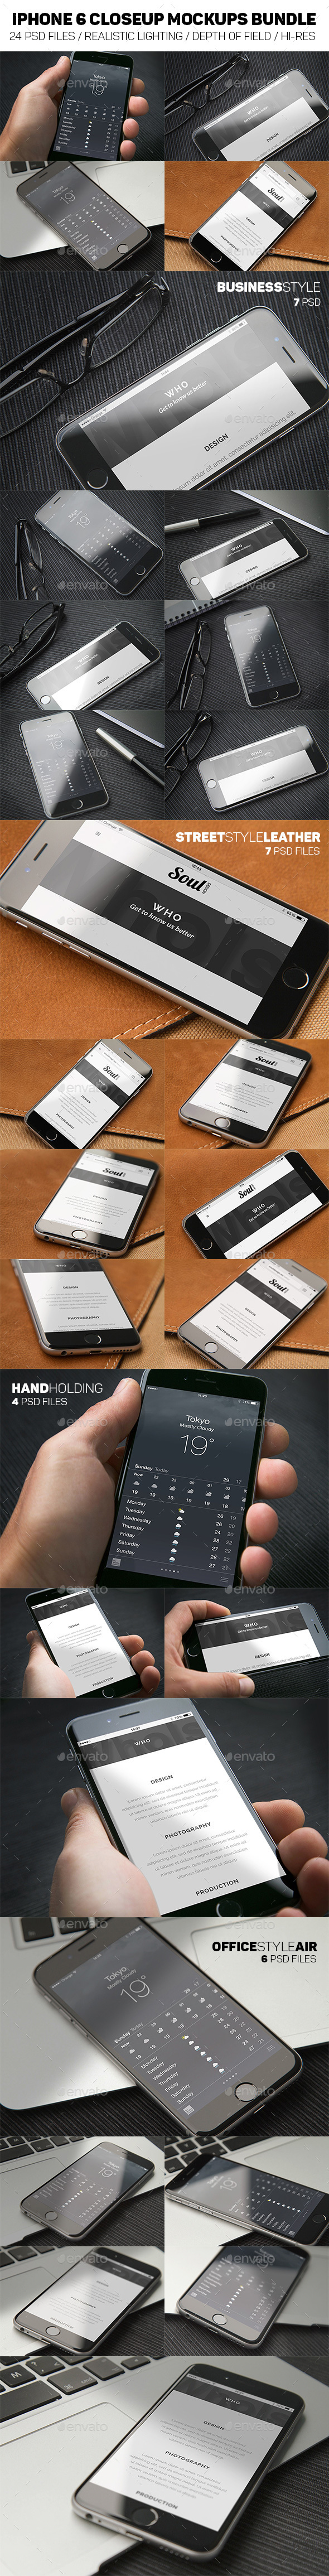 iPhone 6 Closeup Mockups Bundle - Mobile Displays